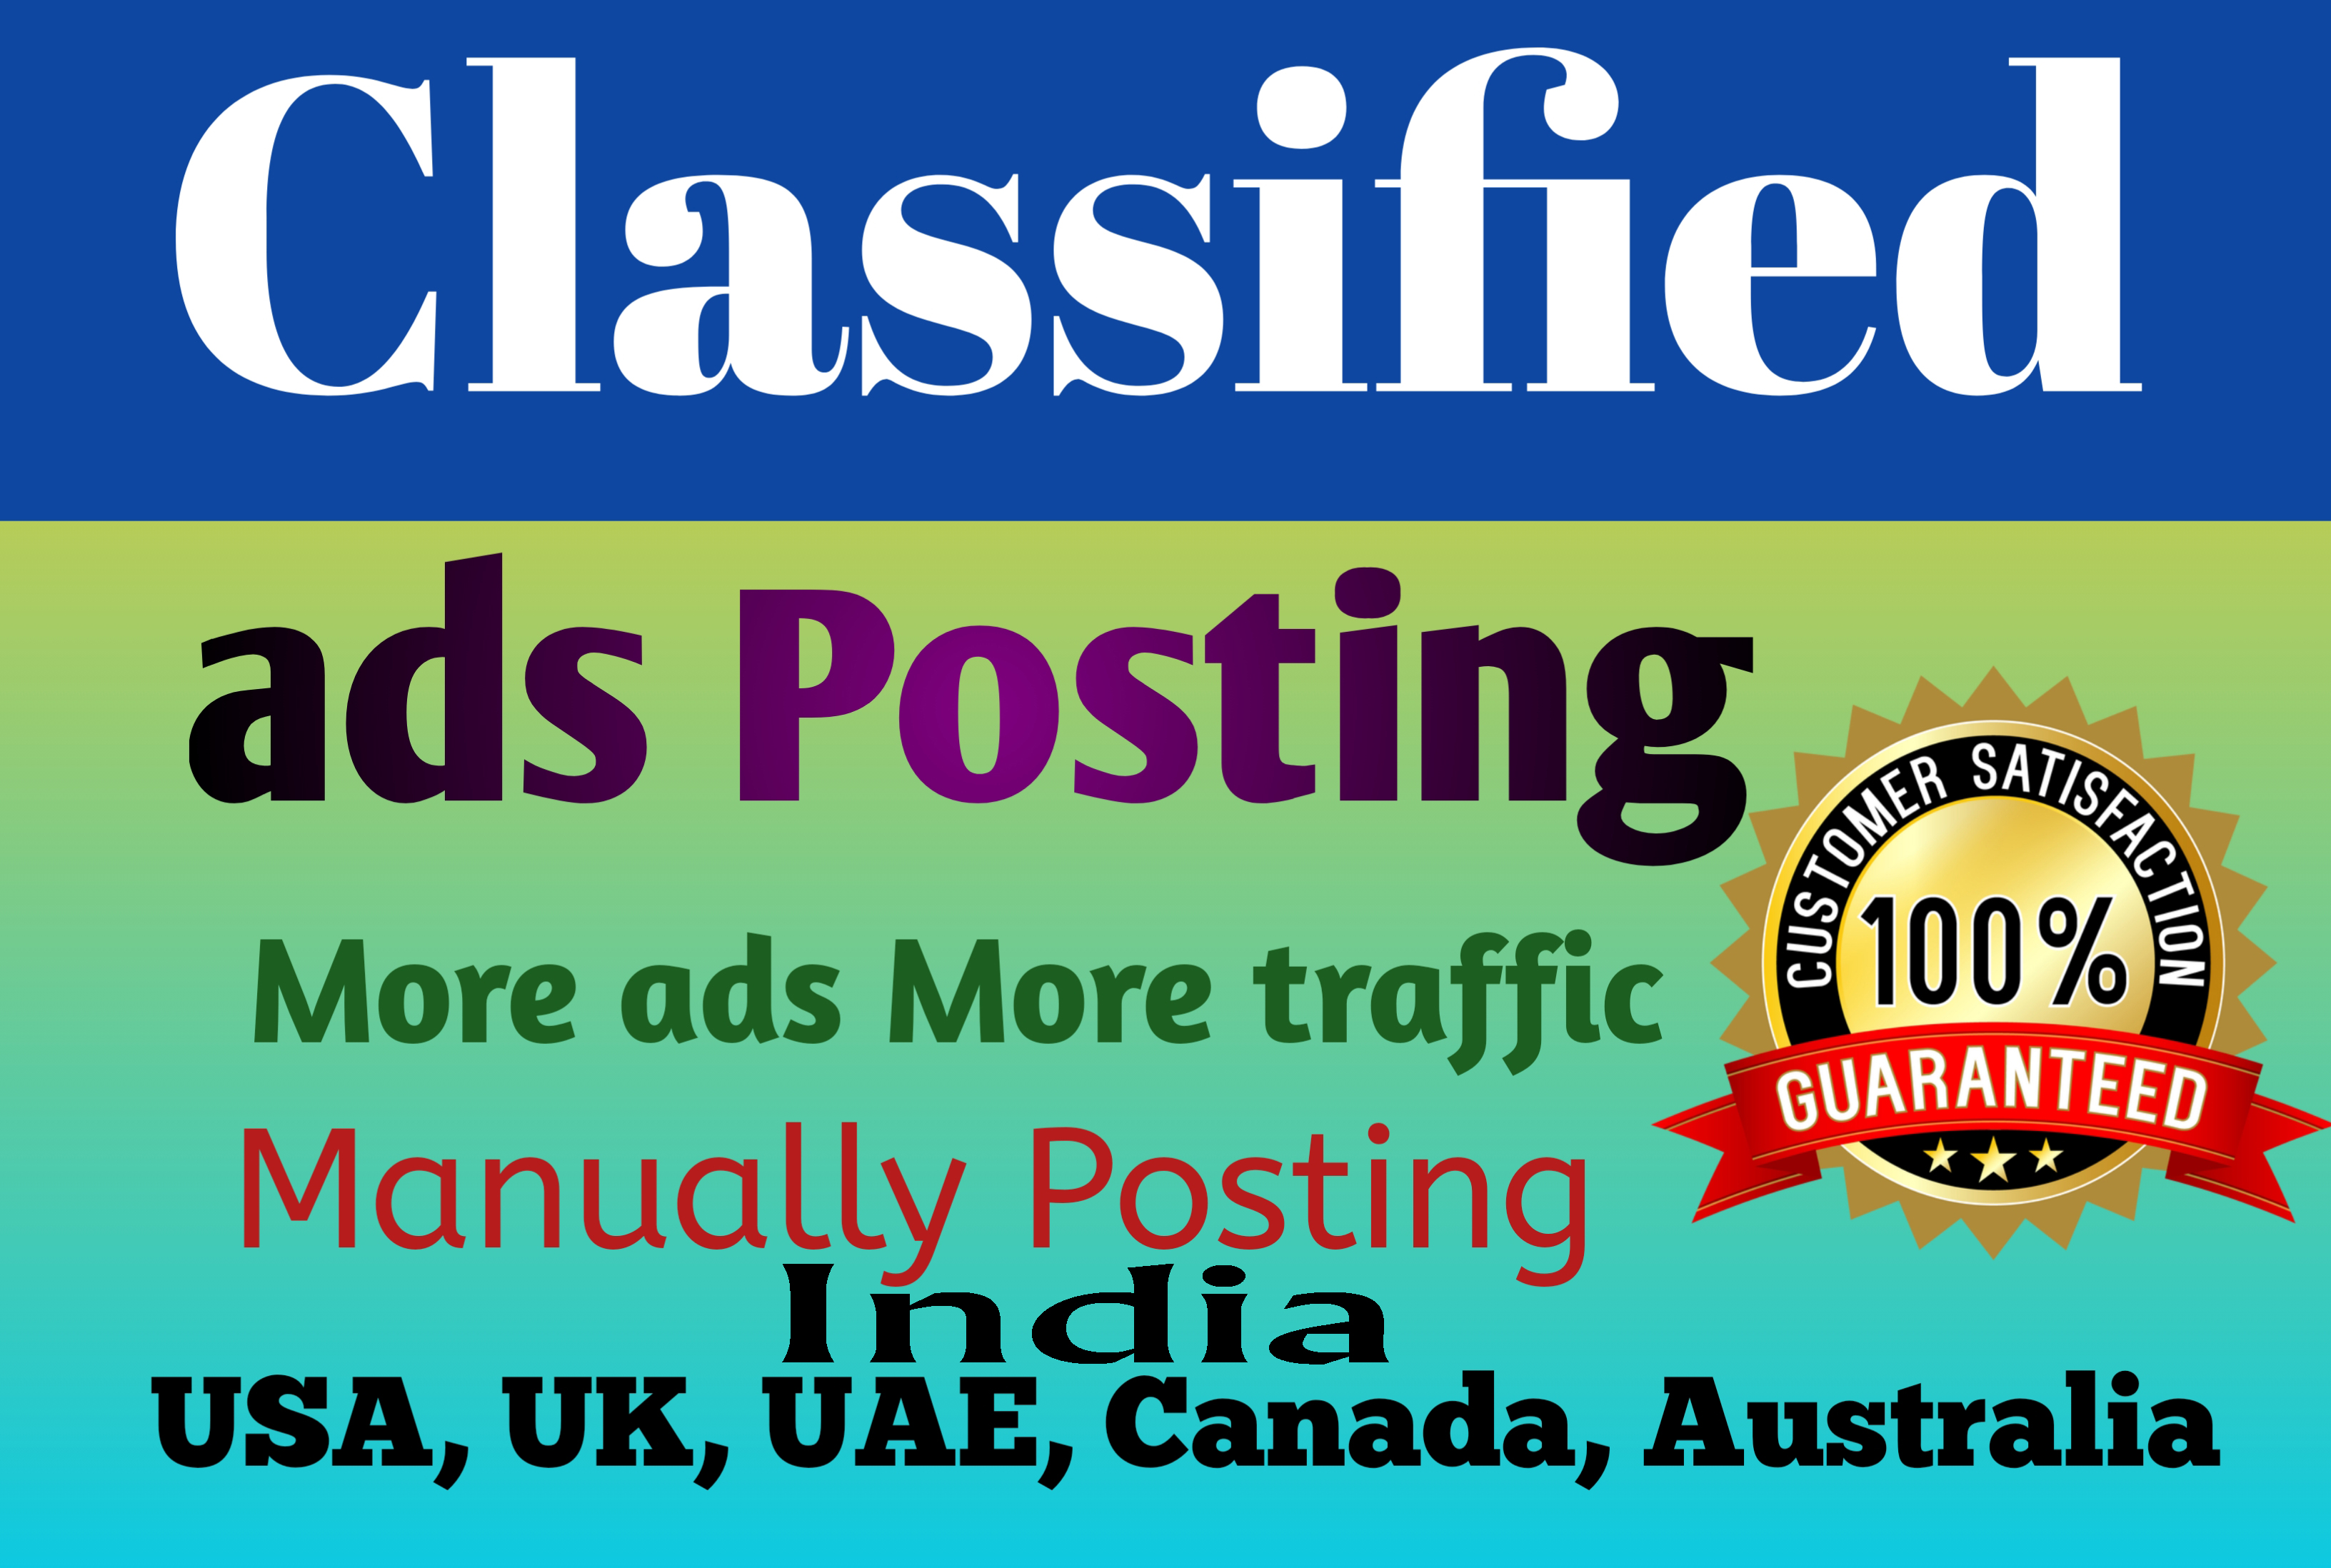 Provide 20 Classified ads Posting manually Backlinks increase your website ranking